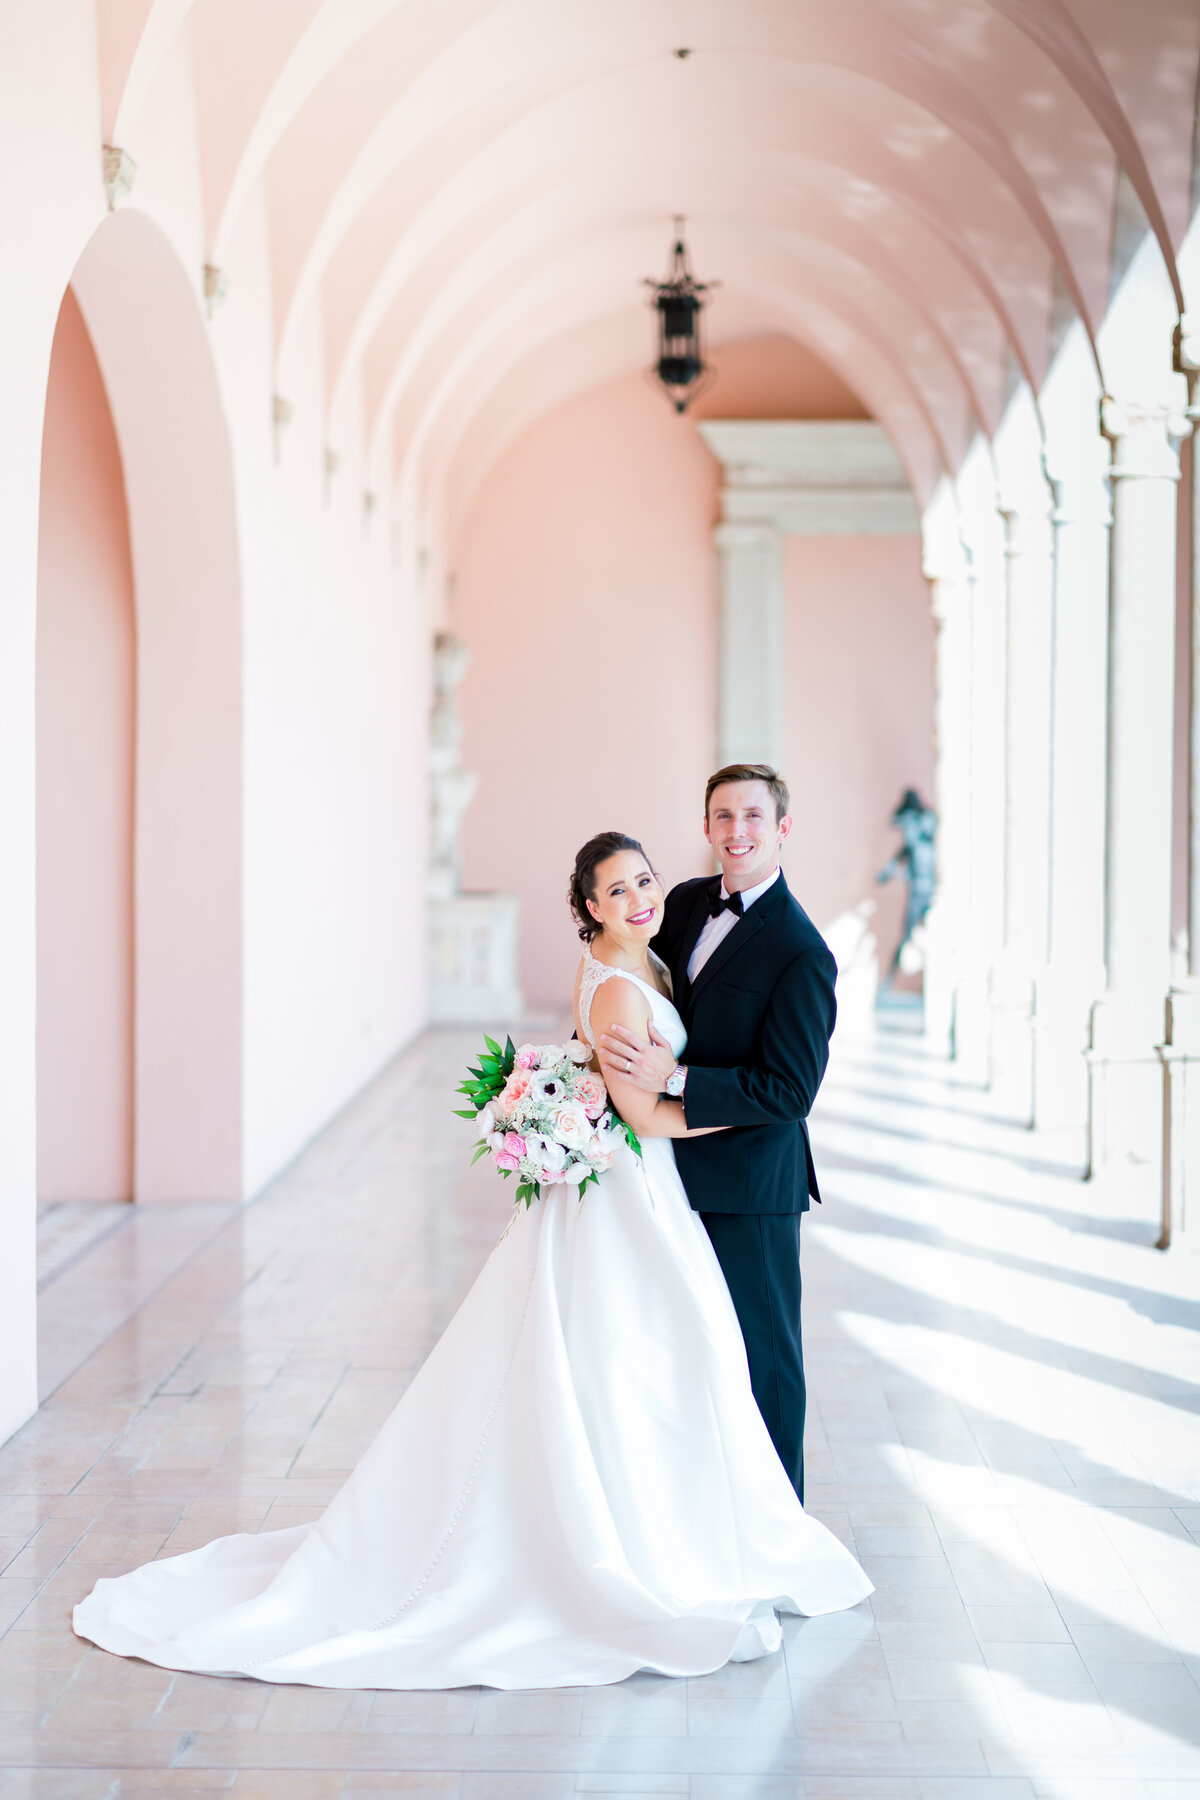 Ringling Museum_Shauna and Jordon Photography020